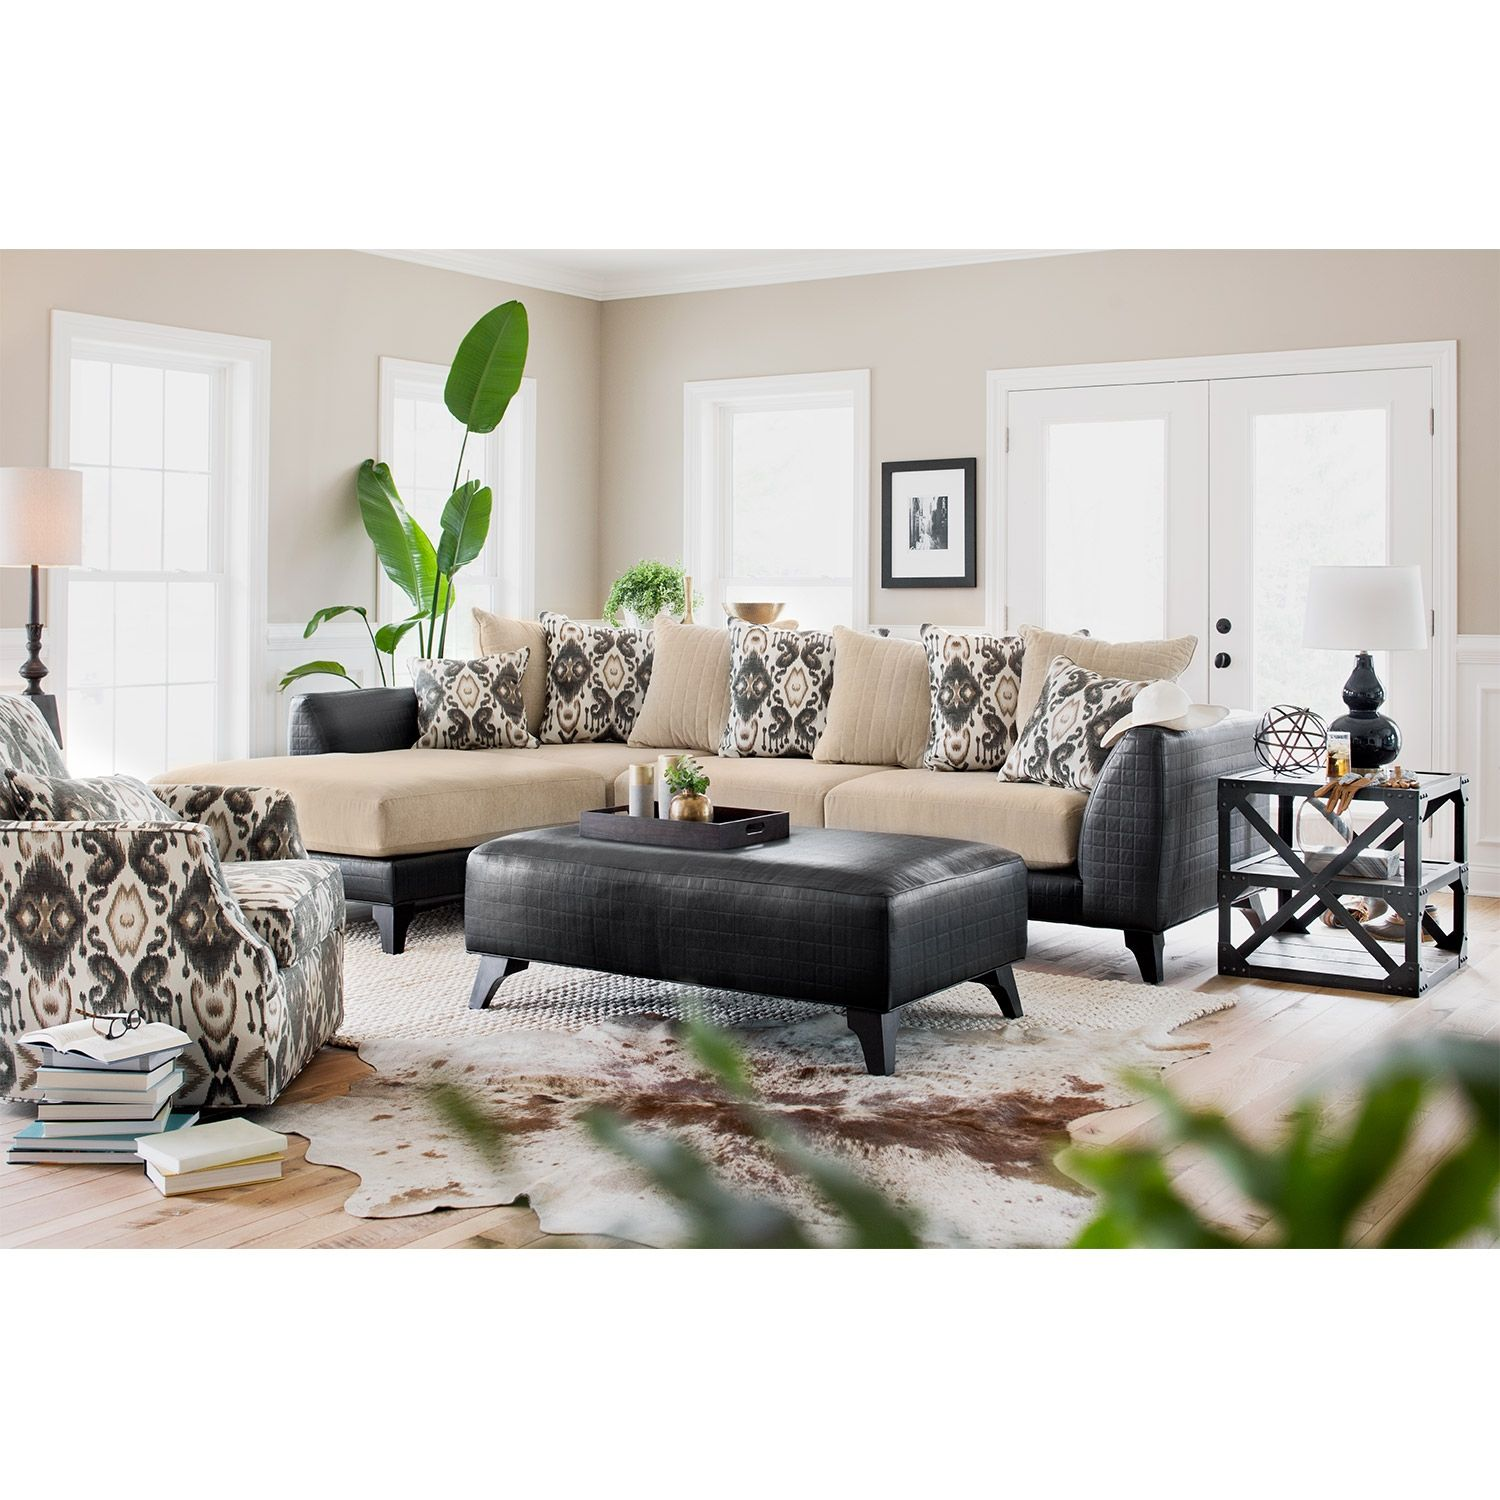 Value City Living Room Furniture Gotham 2 Pc Sectional Reverse Value City Furniture Living